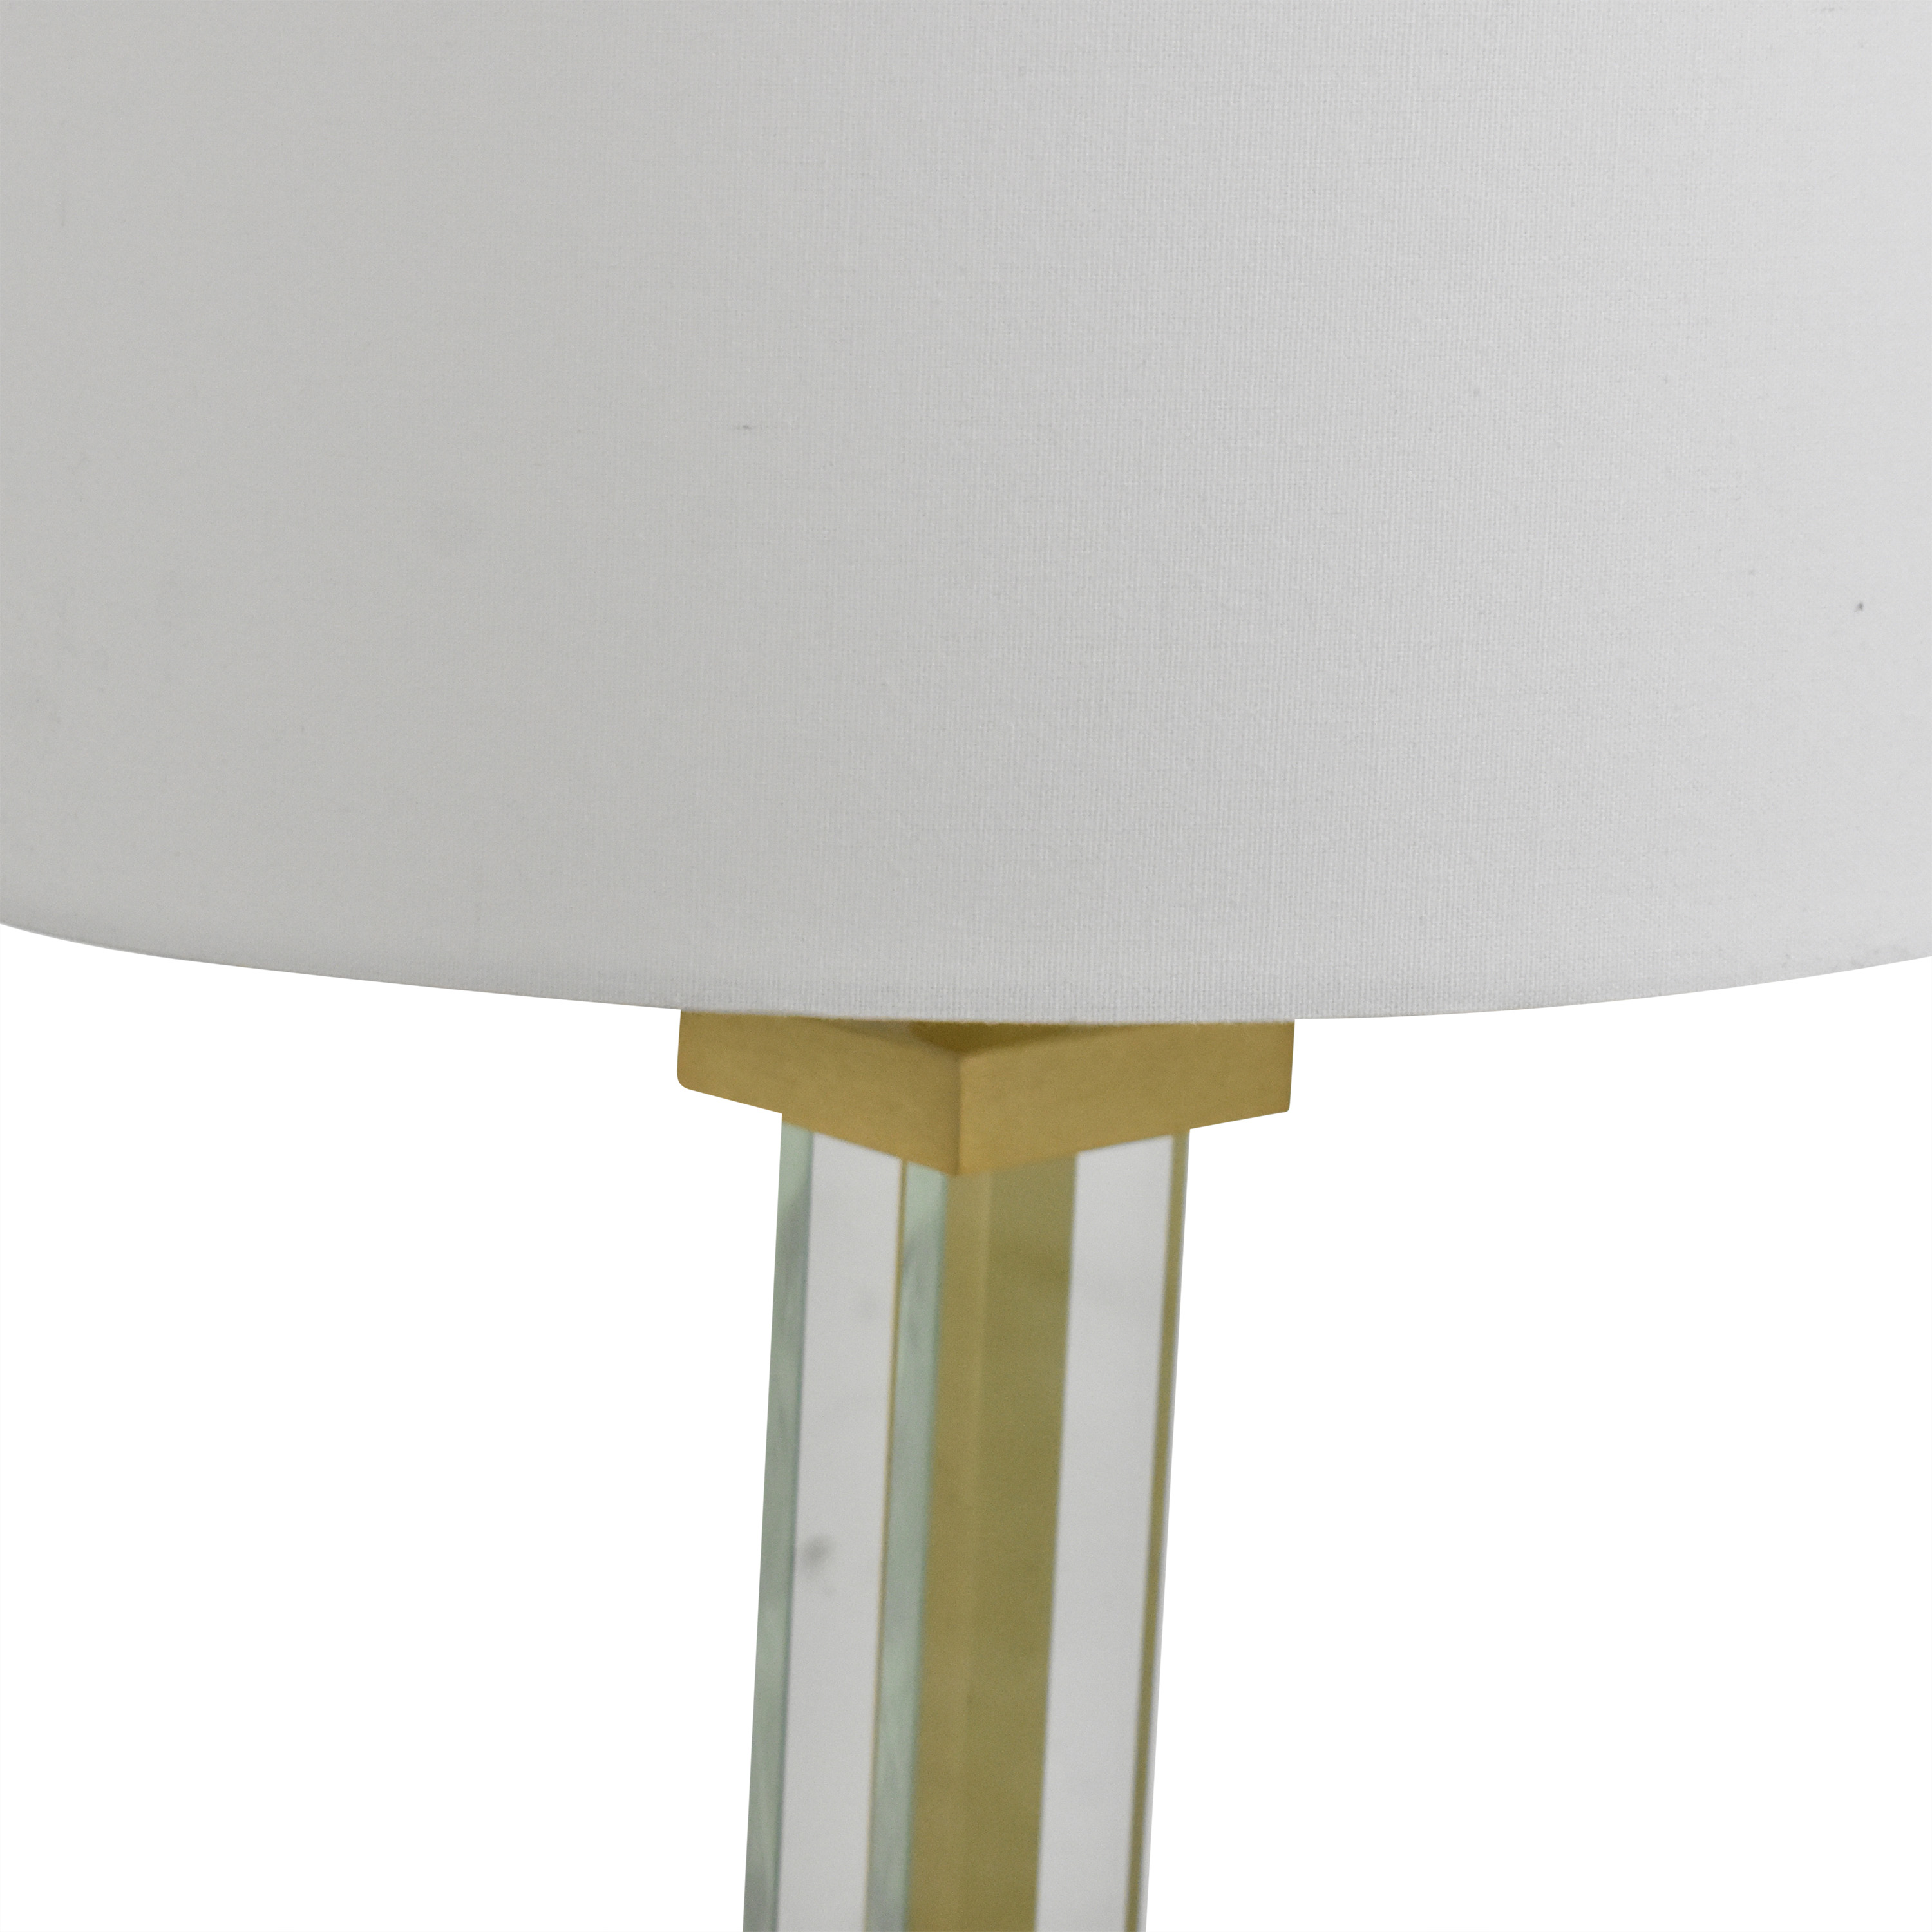 CB2 Table Lamp / Lamps